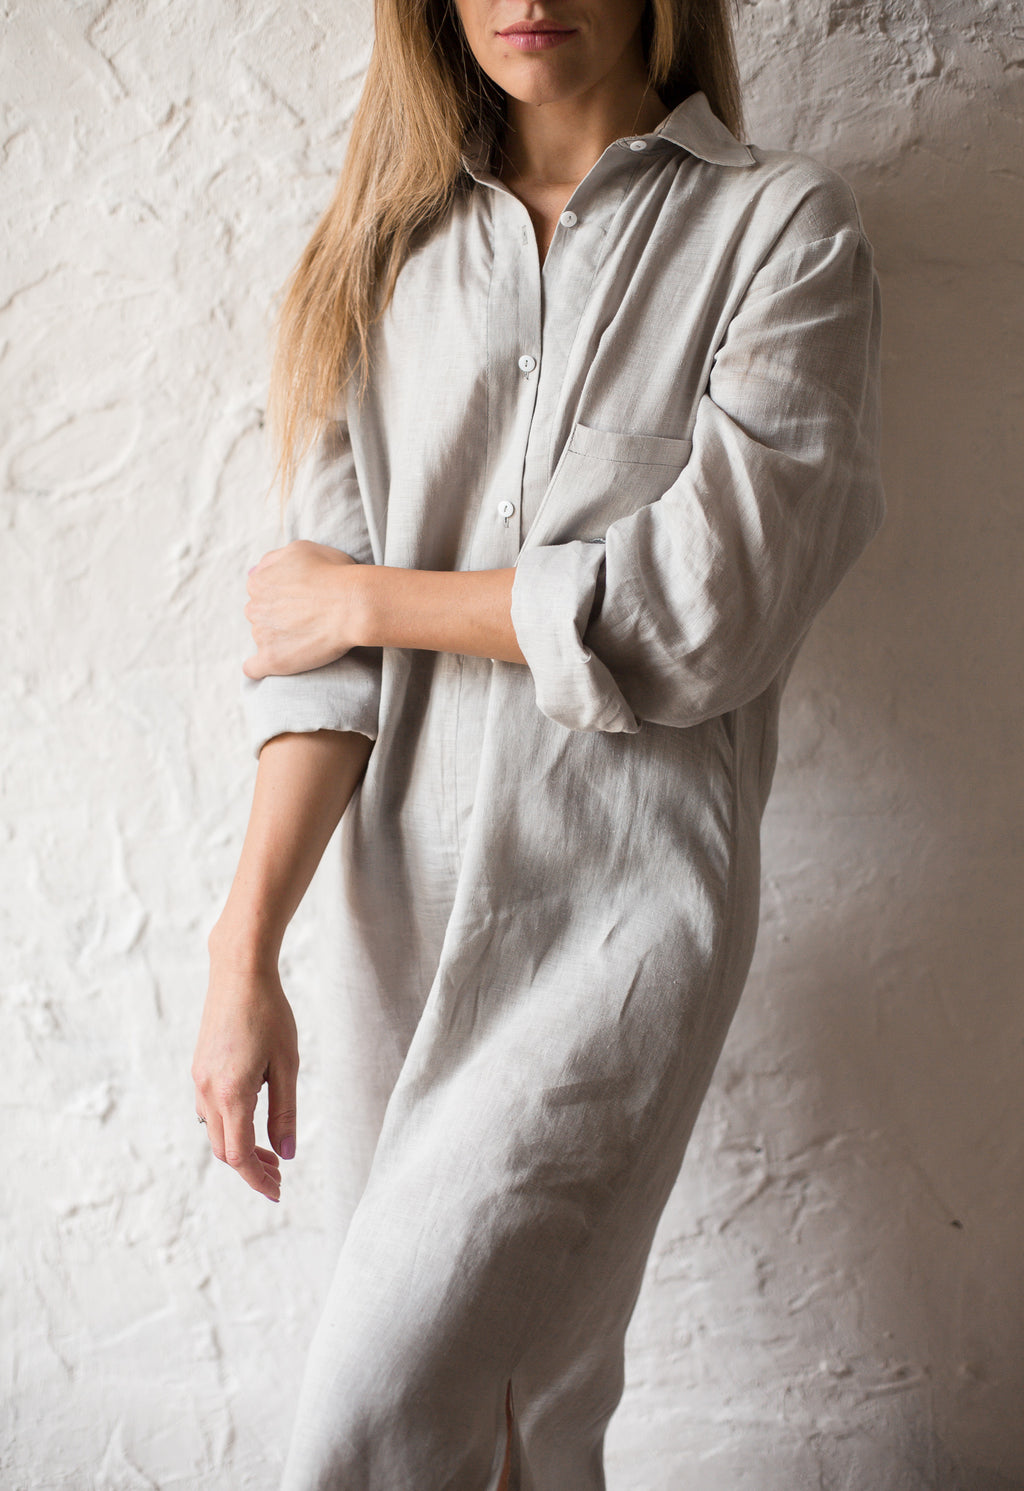 Linen Shirt in Midi Length - Okiya Studio | Sleepwear, Homewear, Lingerie, Home Textiles